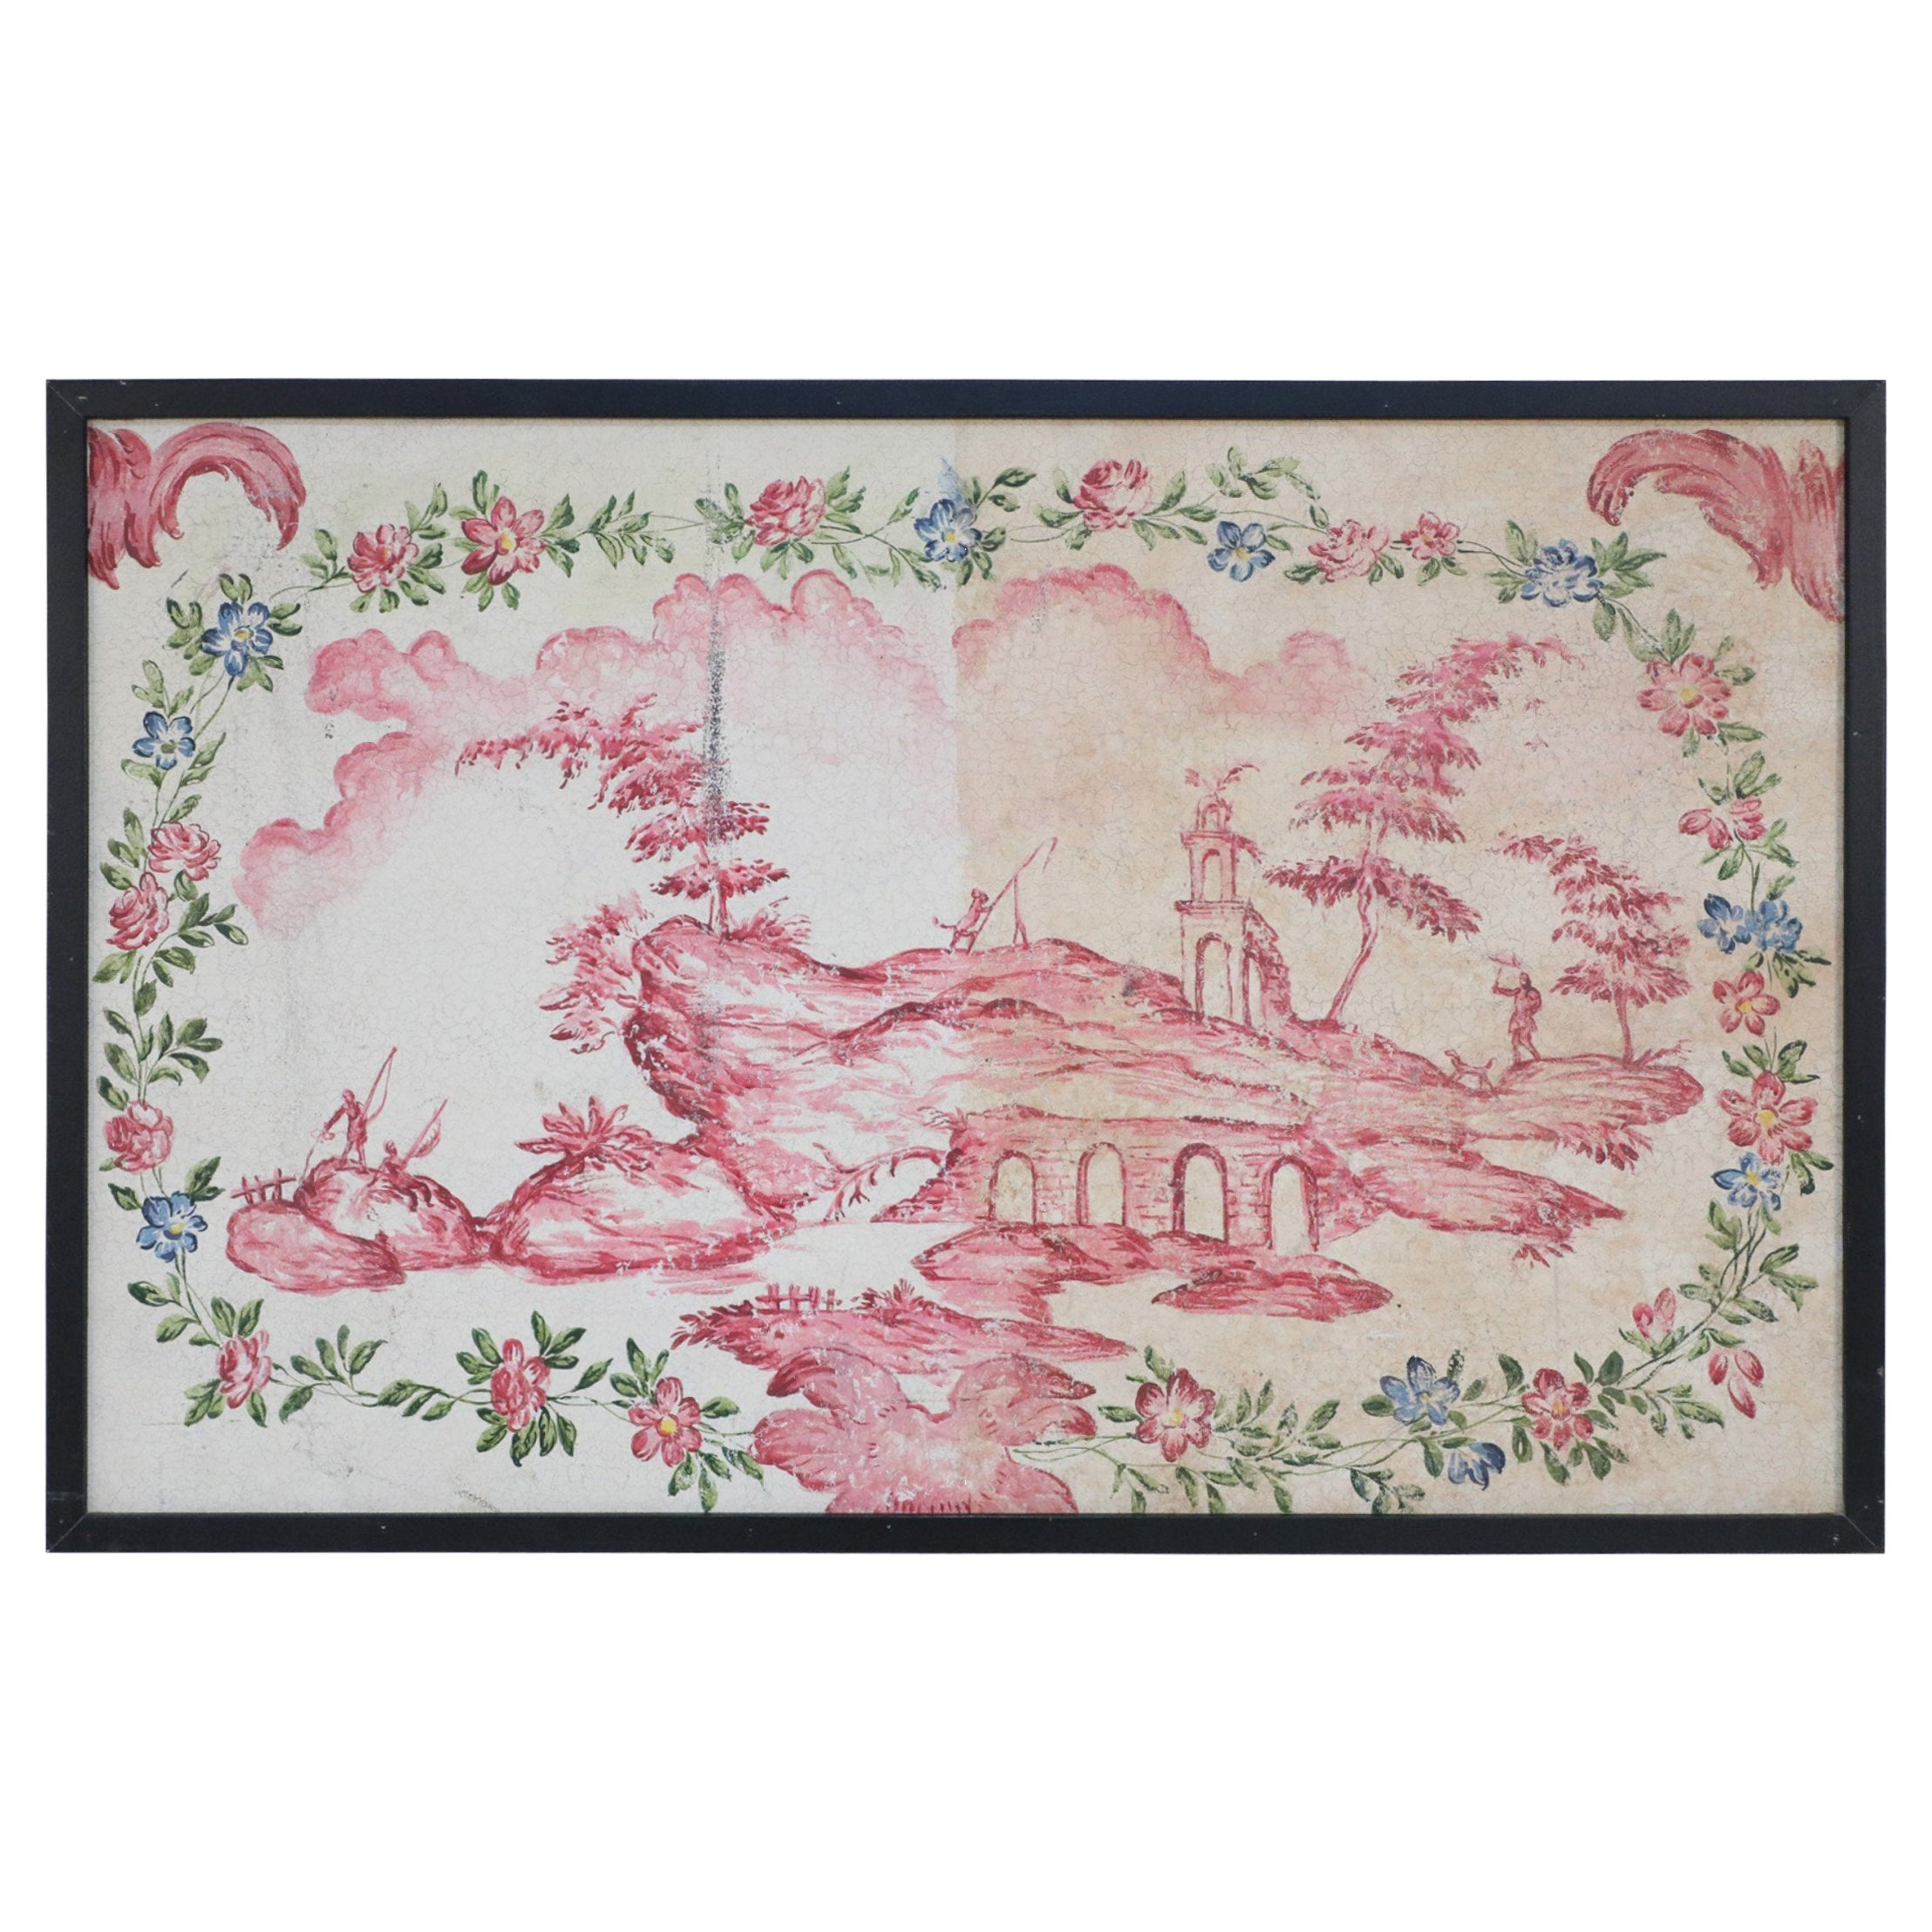 Framed Pink and Green Painted Panel Depicting a Chinese Landscape